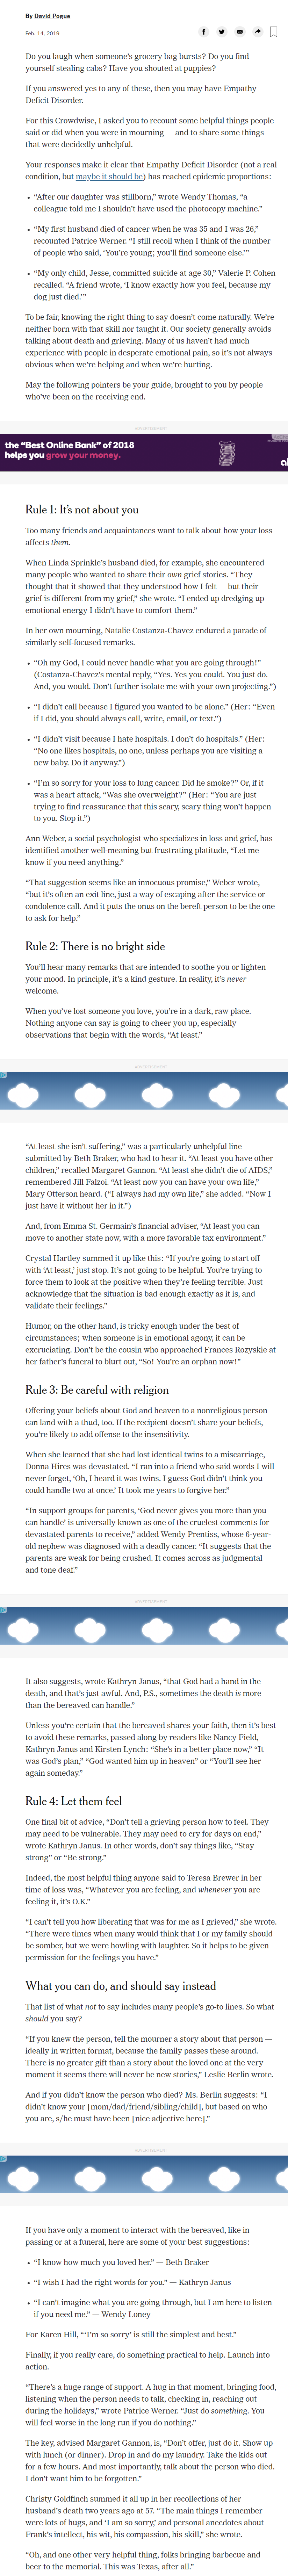 screenshot what to say to someone who's grieving NY Times.png